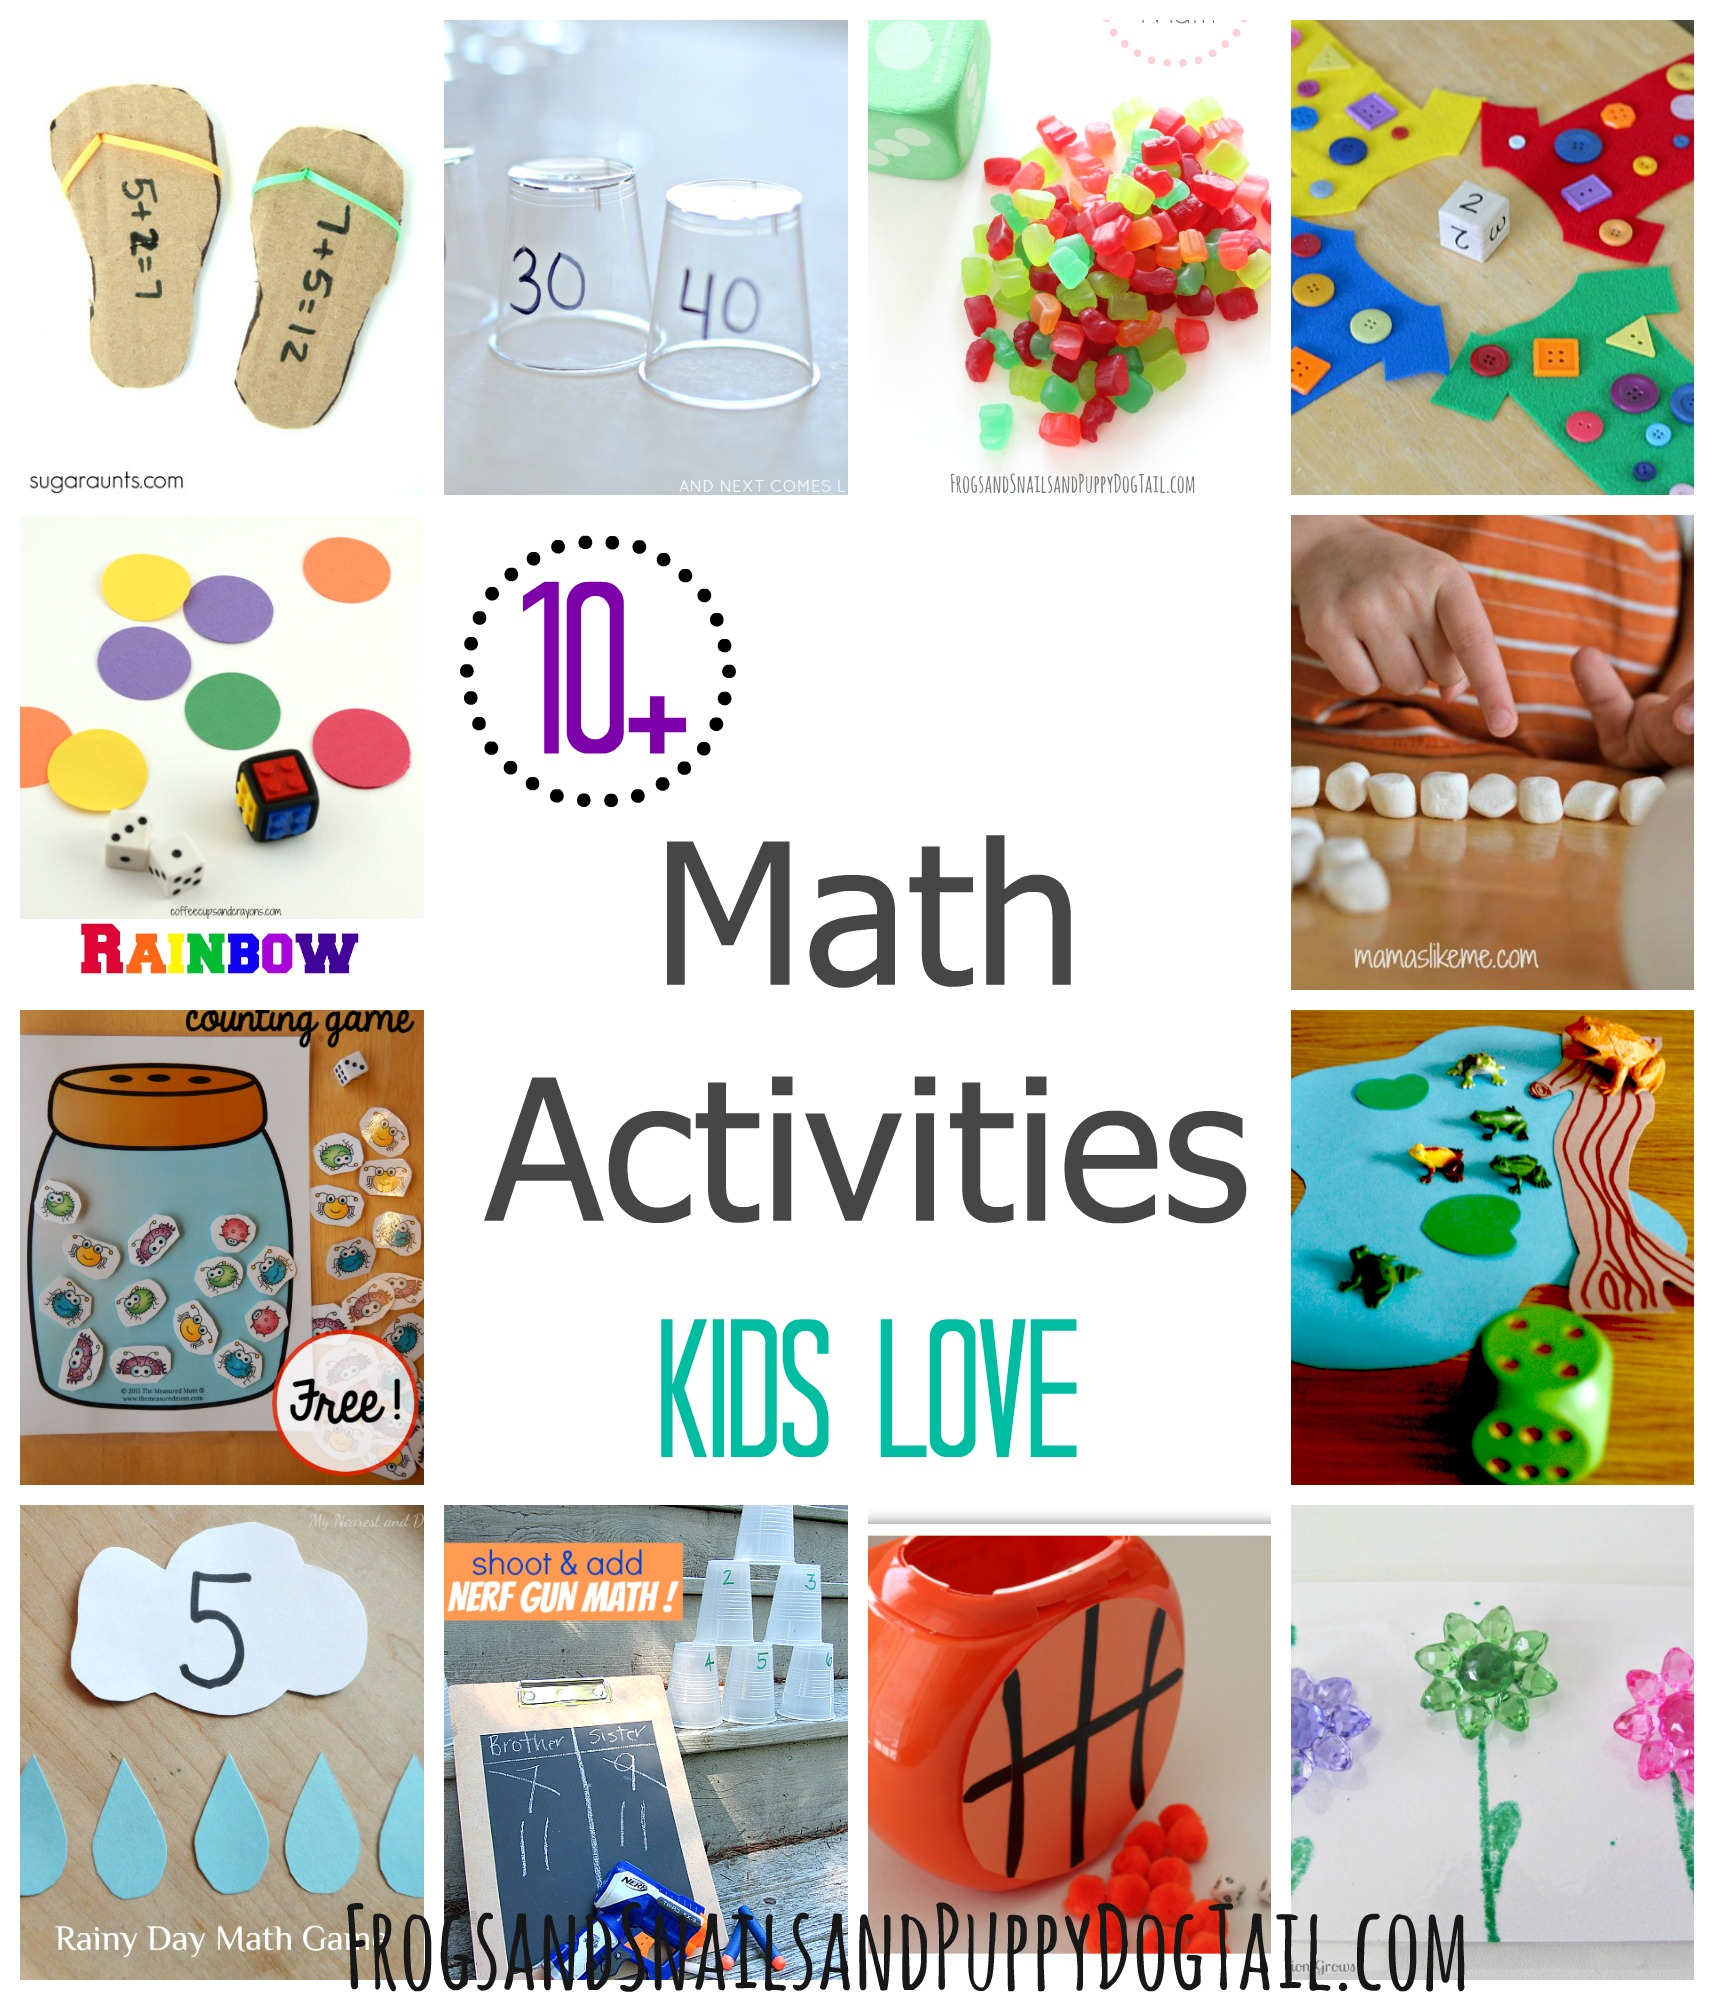 Math Activities Kids Love